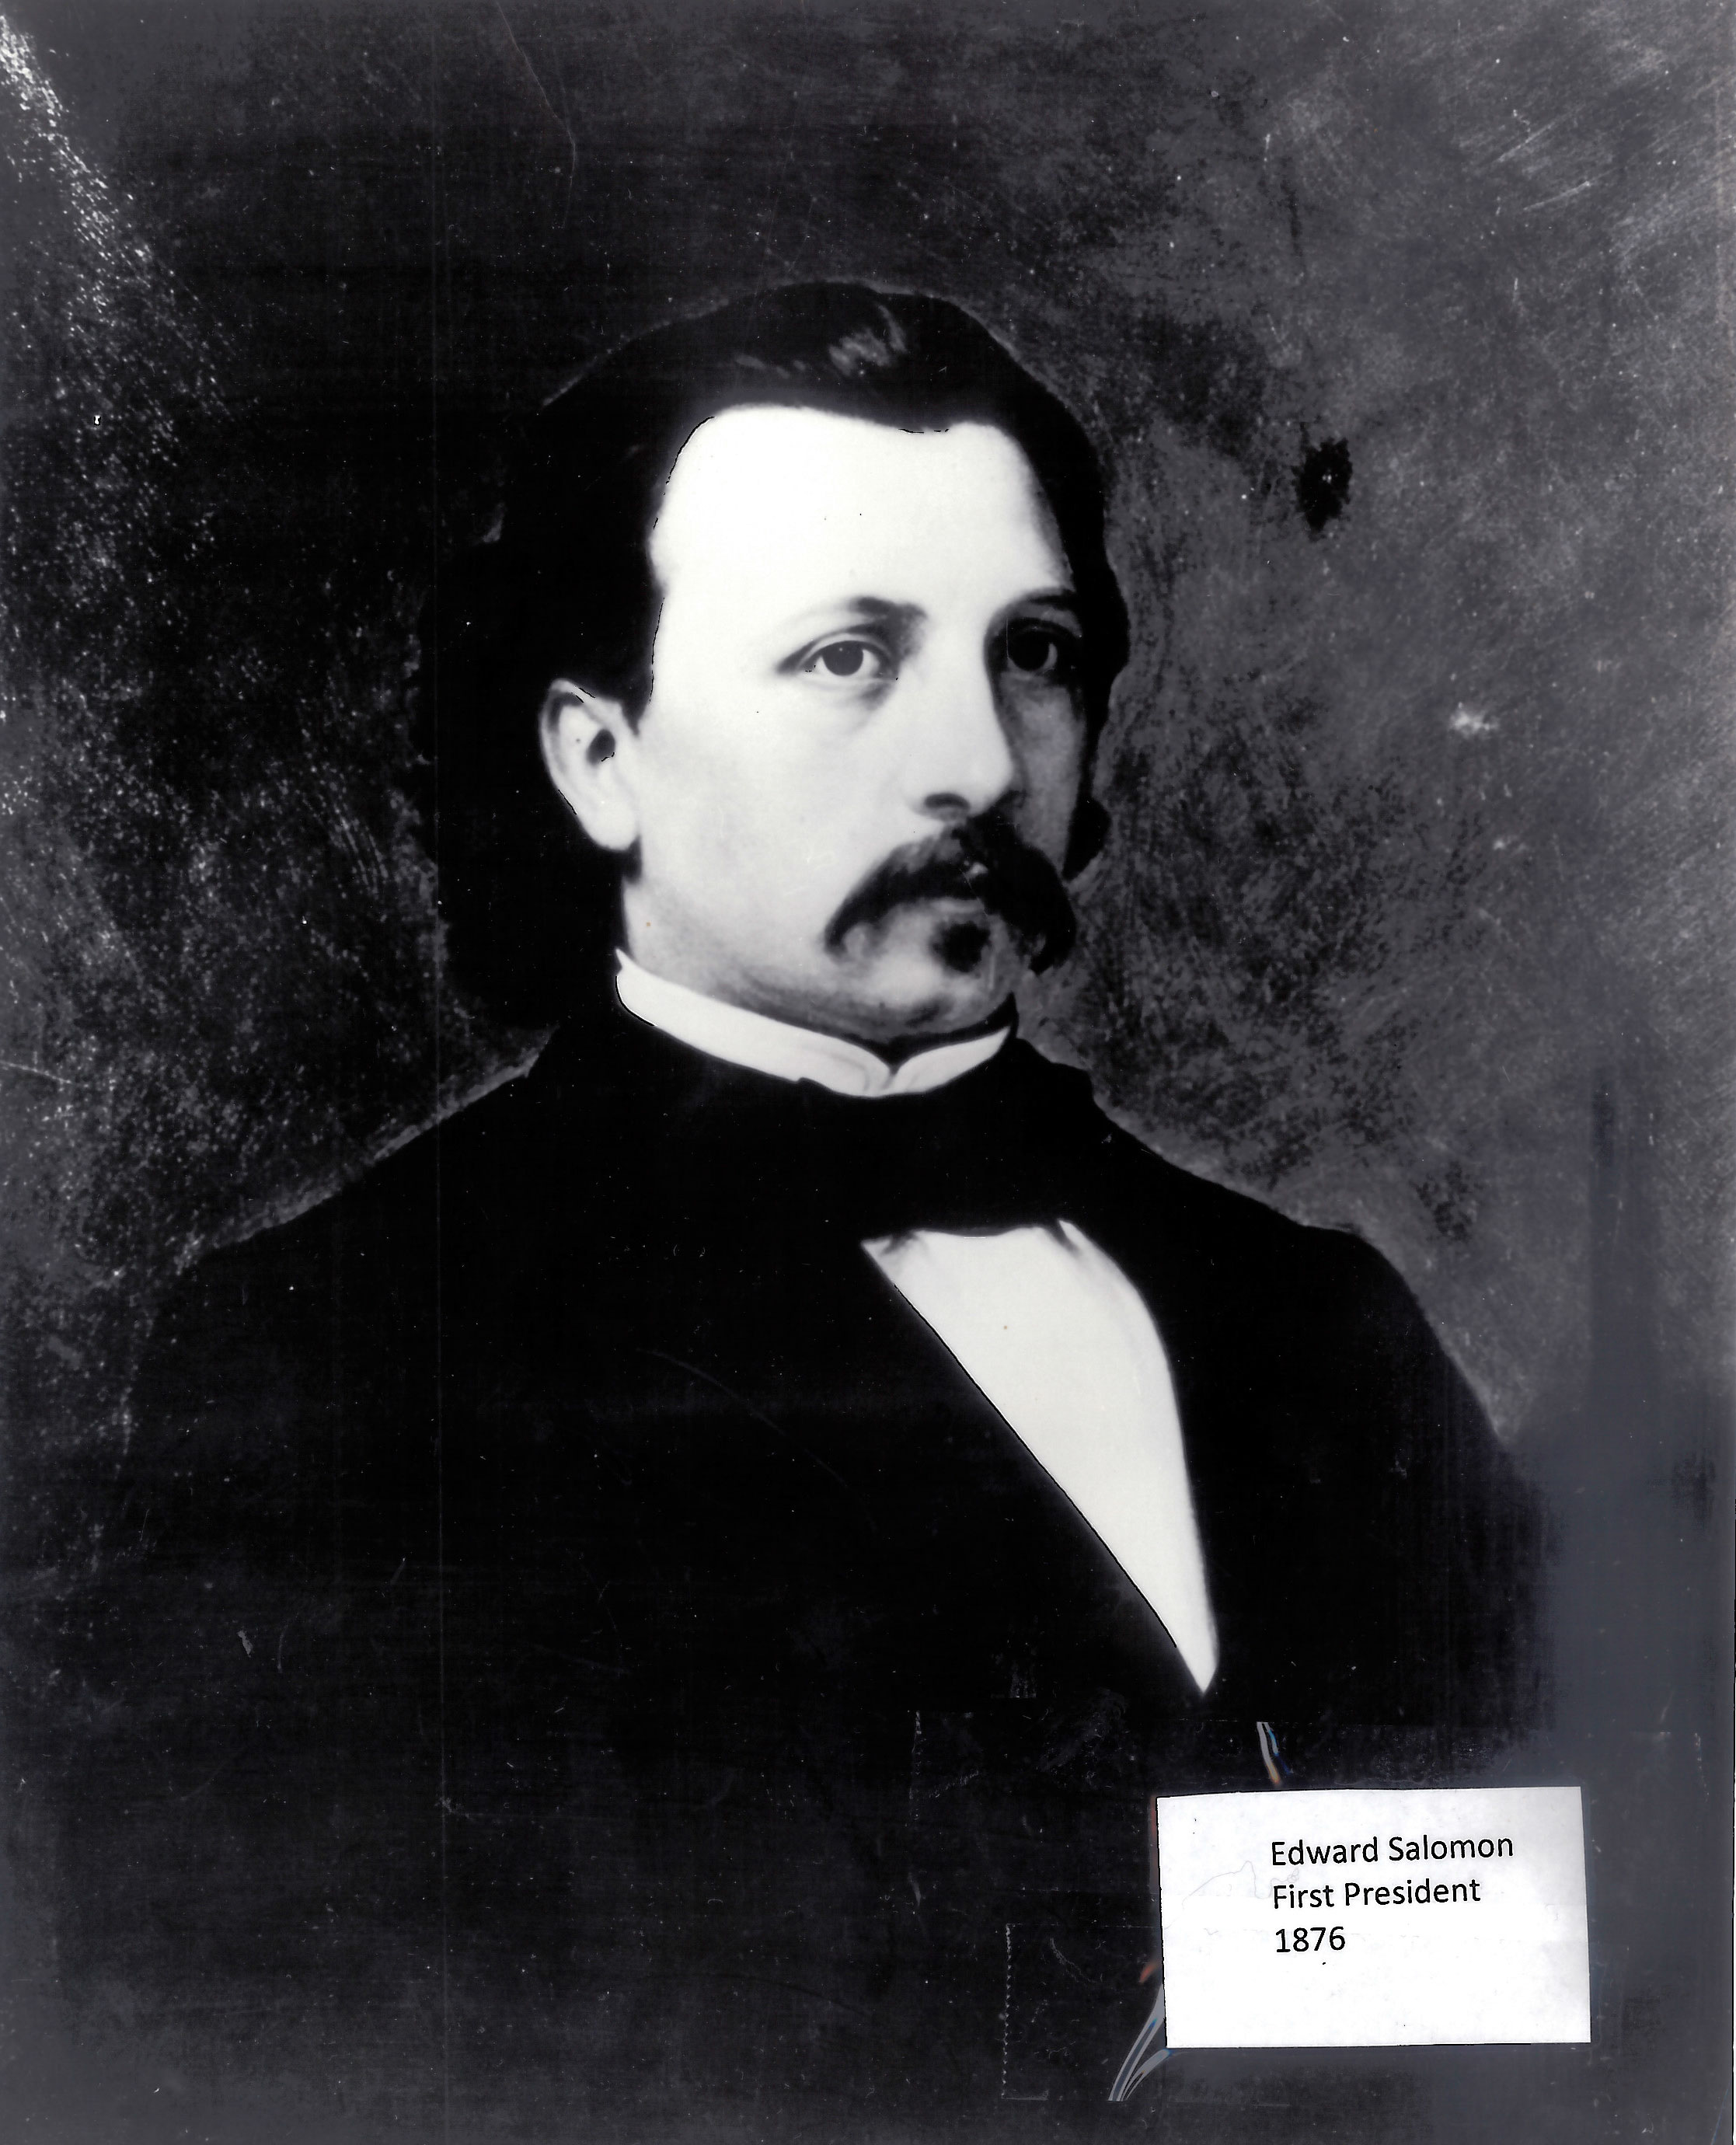 Edward Solomon, First President